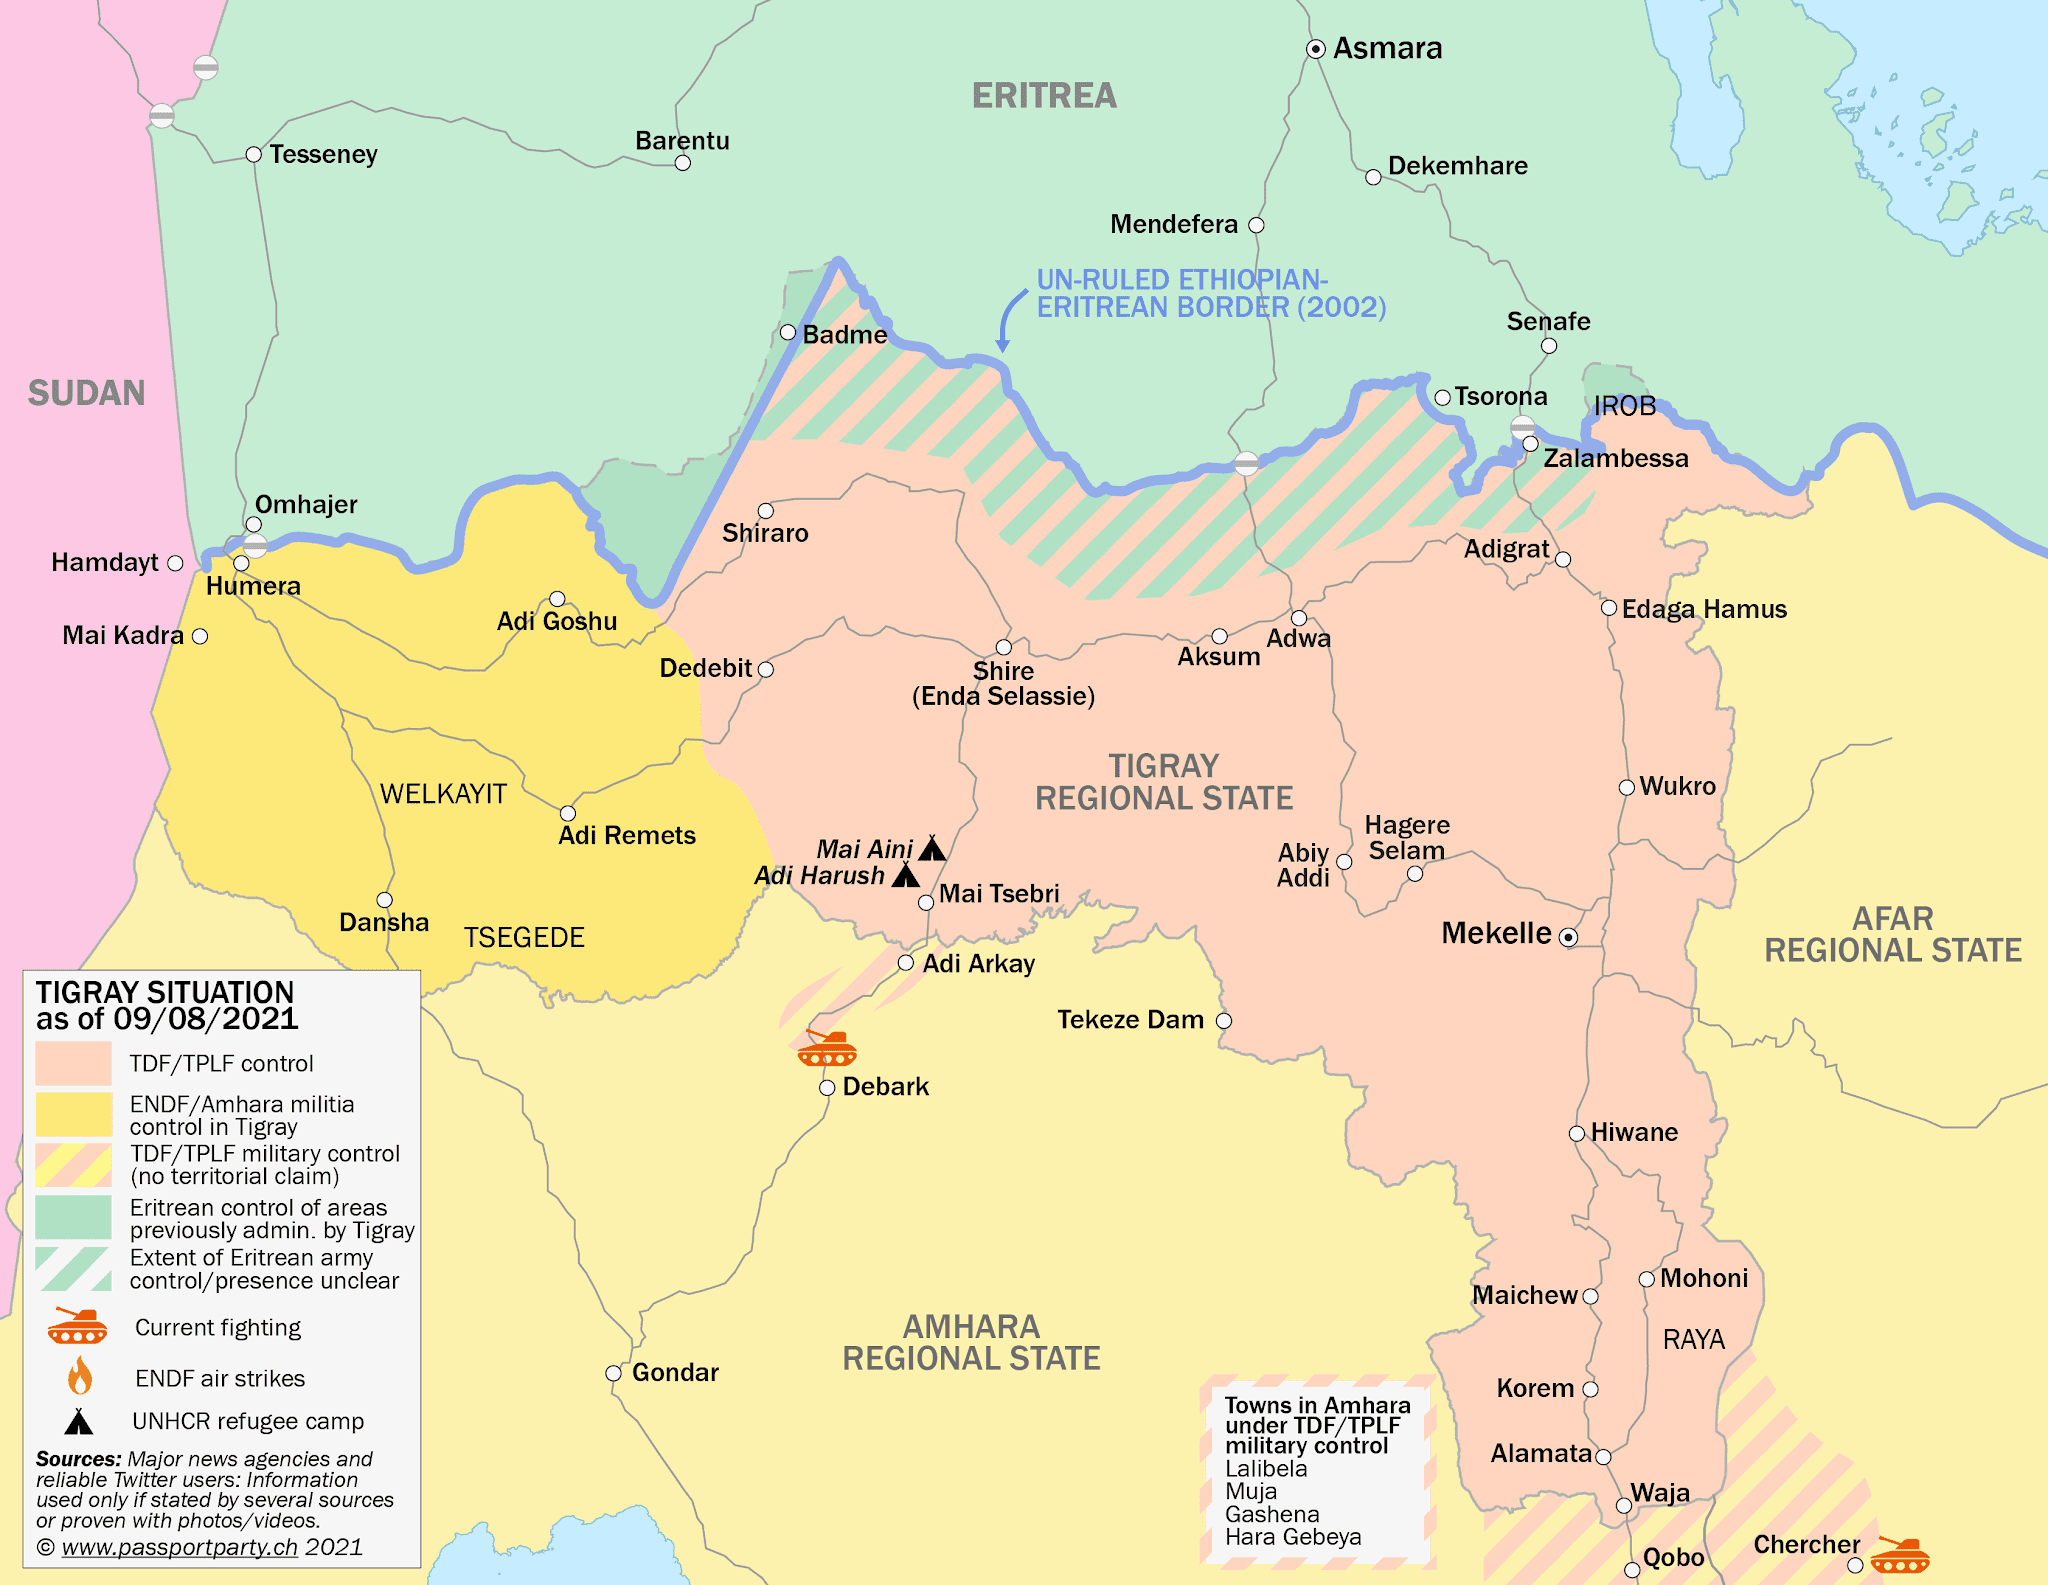 Tigray control map: Rough illustration of territorial control in Ethiopia's Tigray war as known August 9, 2021, showing which areas have been retaken by Tigrayan rebels both inside and outside of the Tigray regional state. By Daniel of Passport Party.